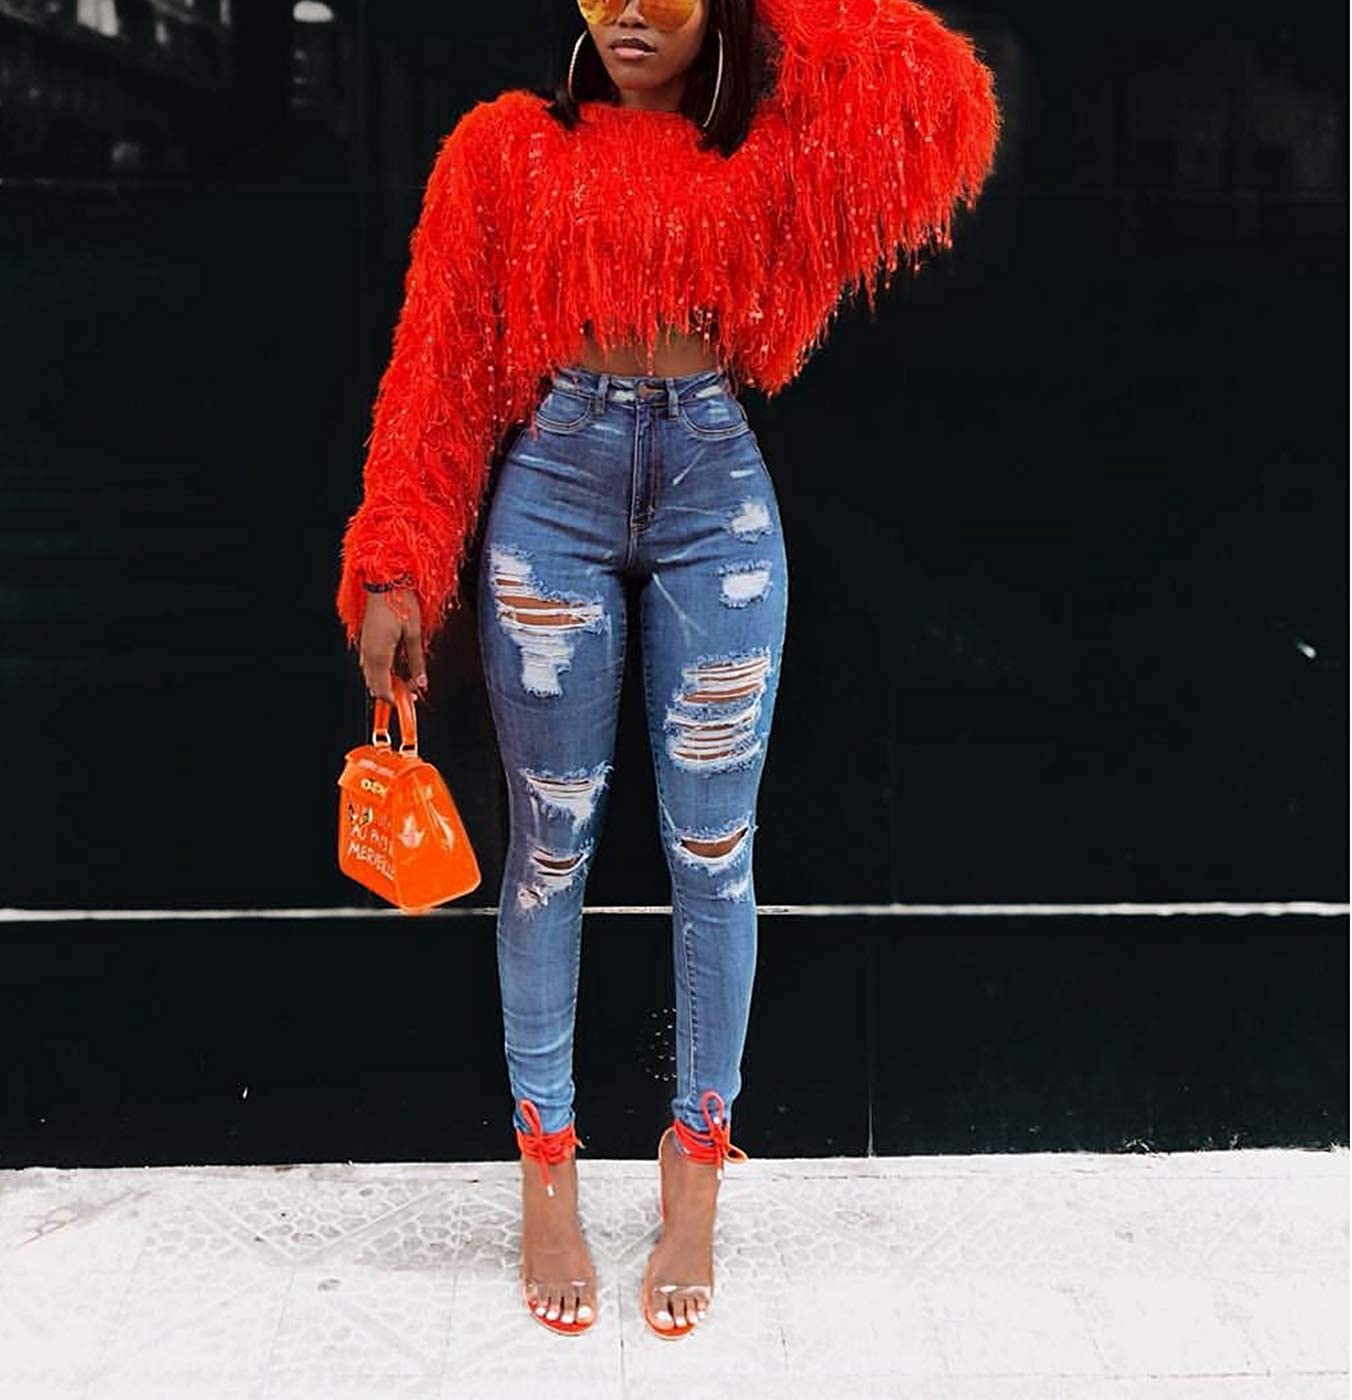 Womens Fashion Pullover Sweaters - Long Sleeve Fall Winter Clothes Warm Faux Fur Fringe Oversized Crop Tops Outwear